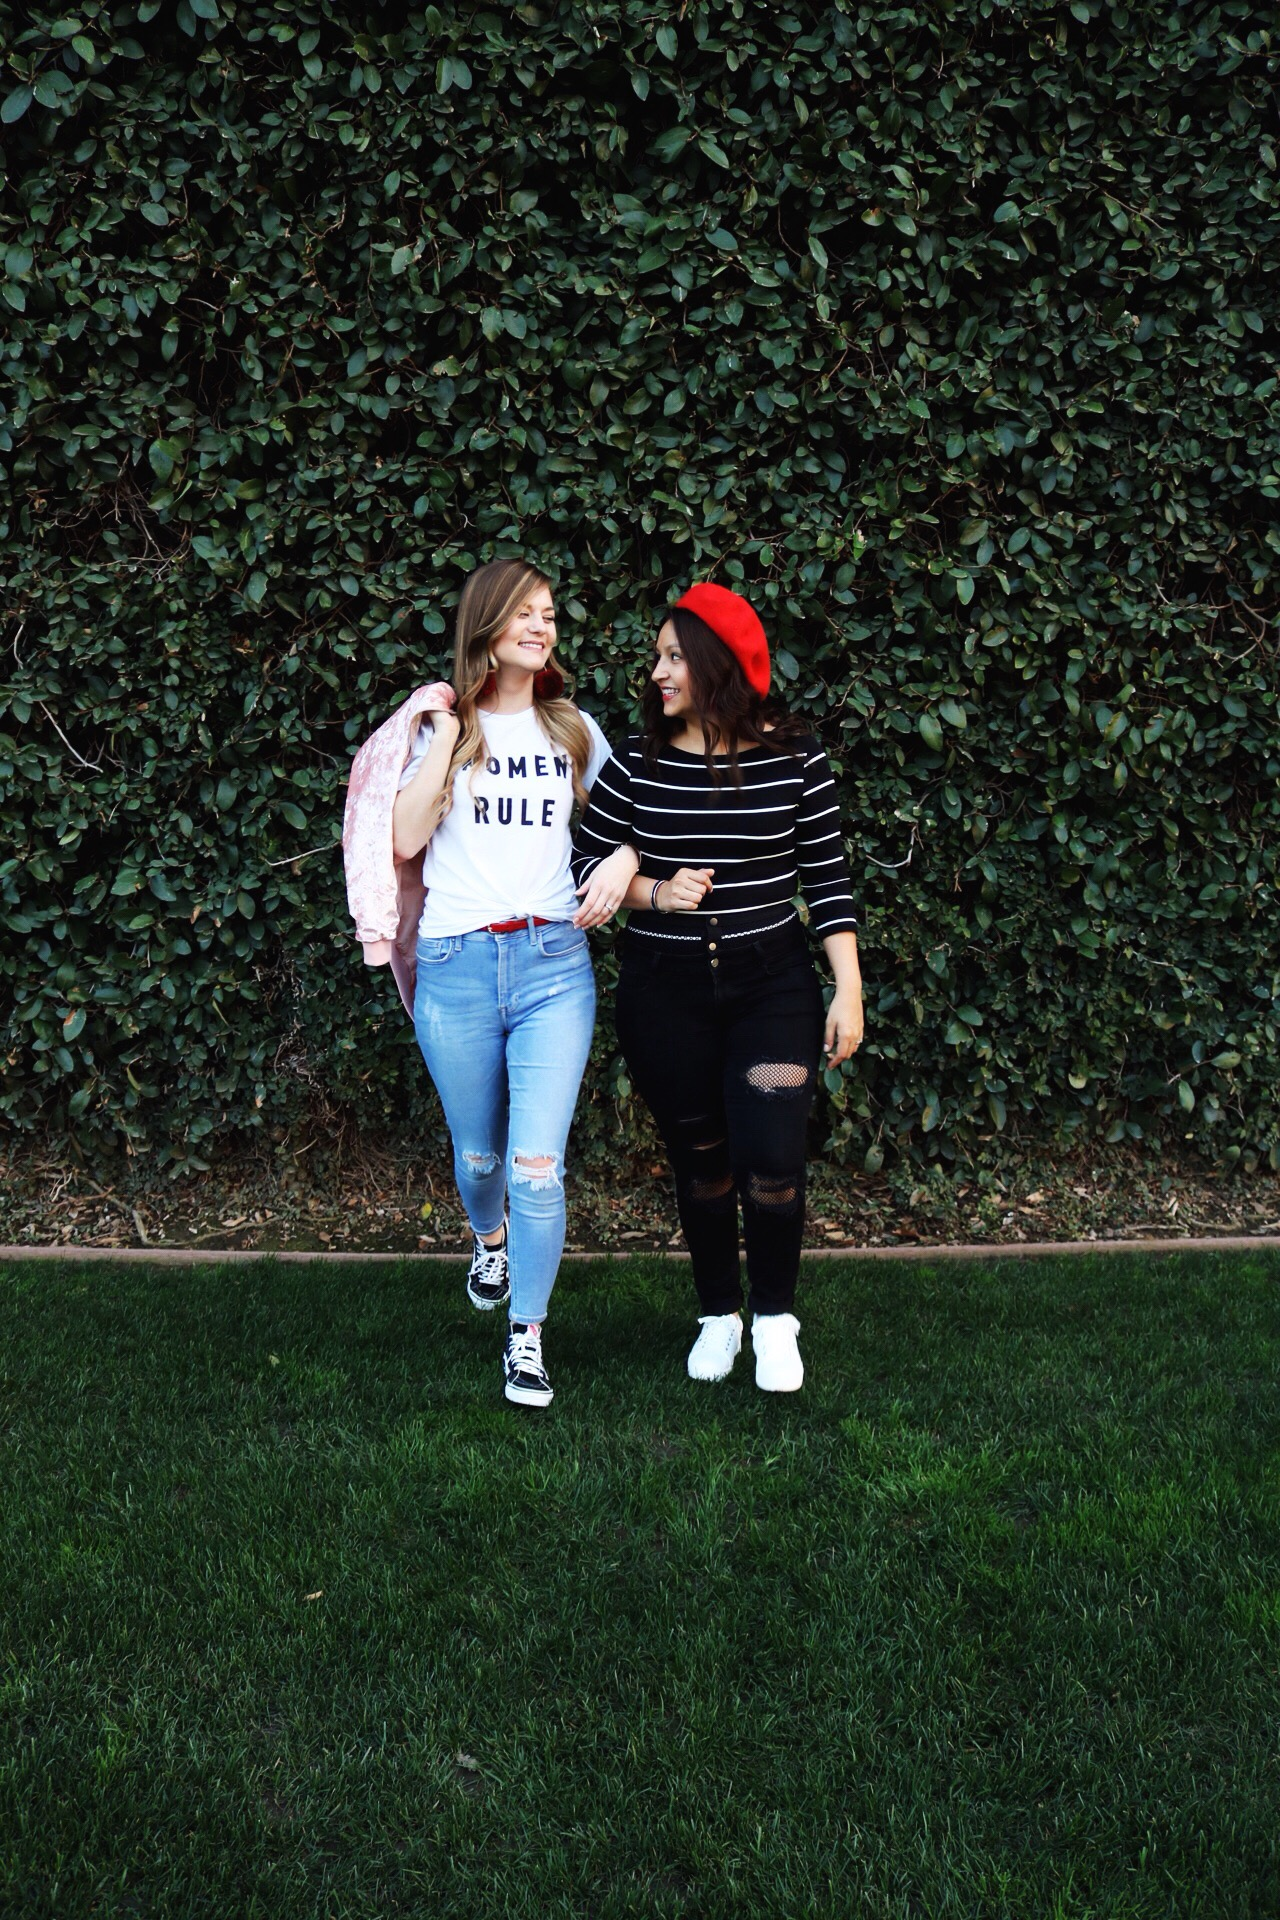 Forever 21 Women Rule Tee, red beret, black fish net denim, light distressed denim, Galentines Day